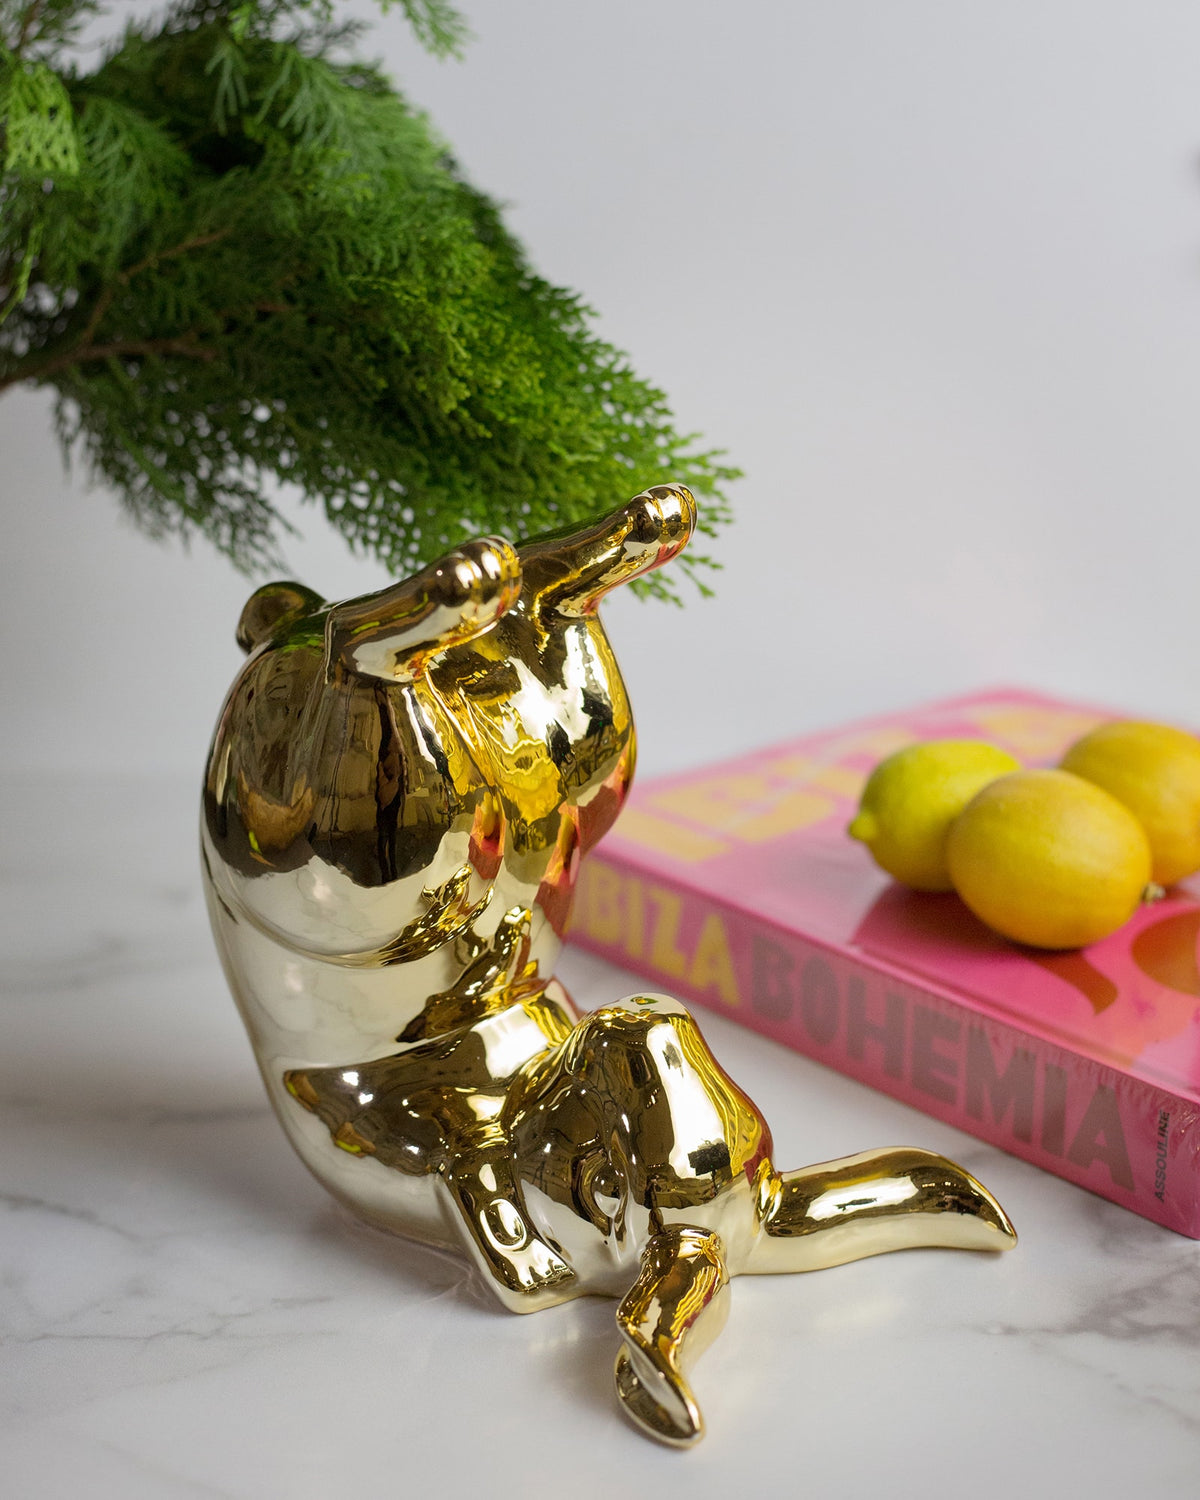 Bunny Gold Moneybox - Bum